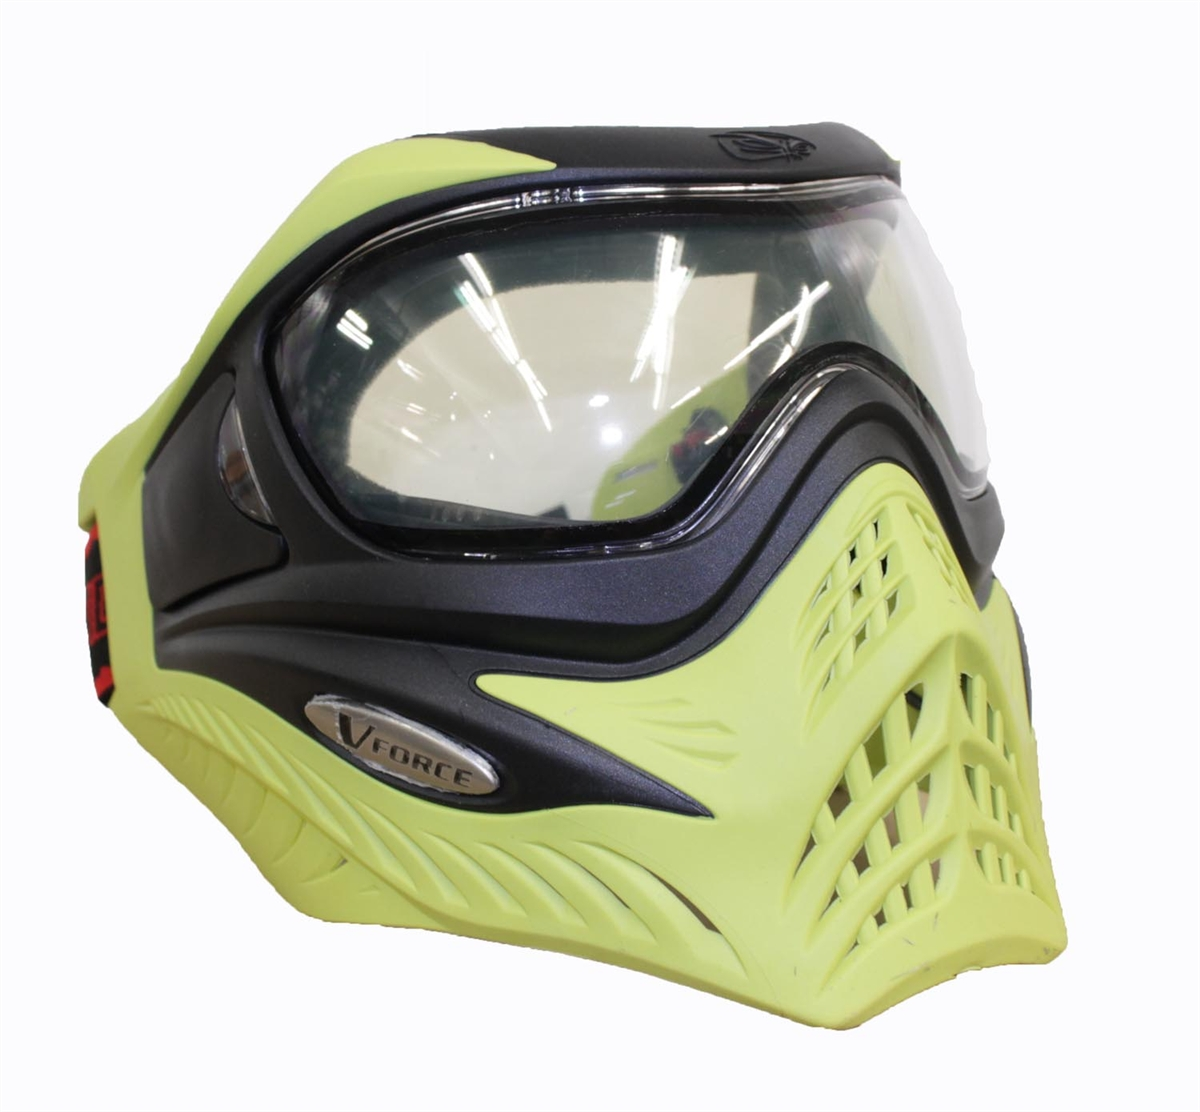 V-FORCE Grill Paintball Mask   Goggle SE Black on Lime by G.I. Sportz